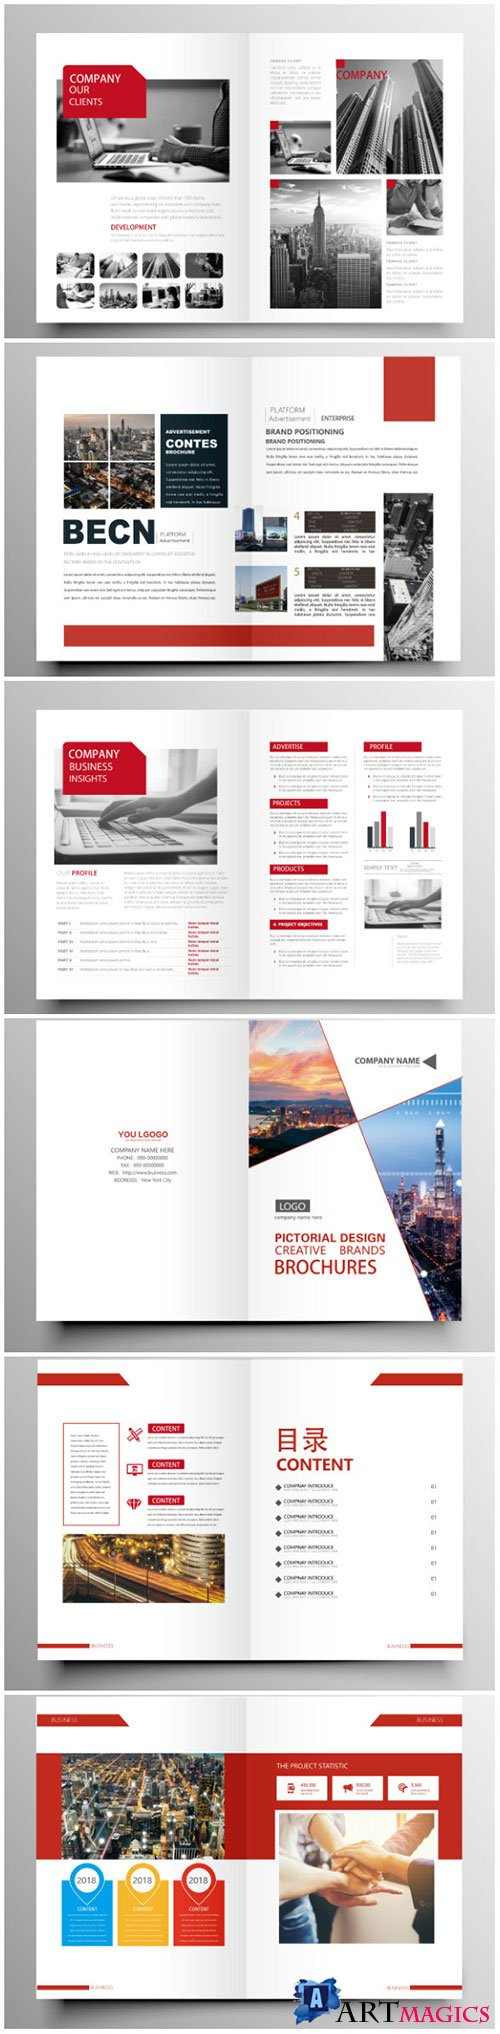 Brochure template vector layout design, corporate business annual report, magazine, flyer mockup # 194